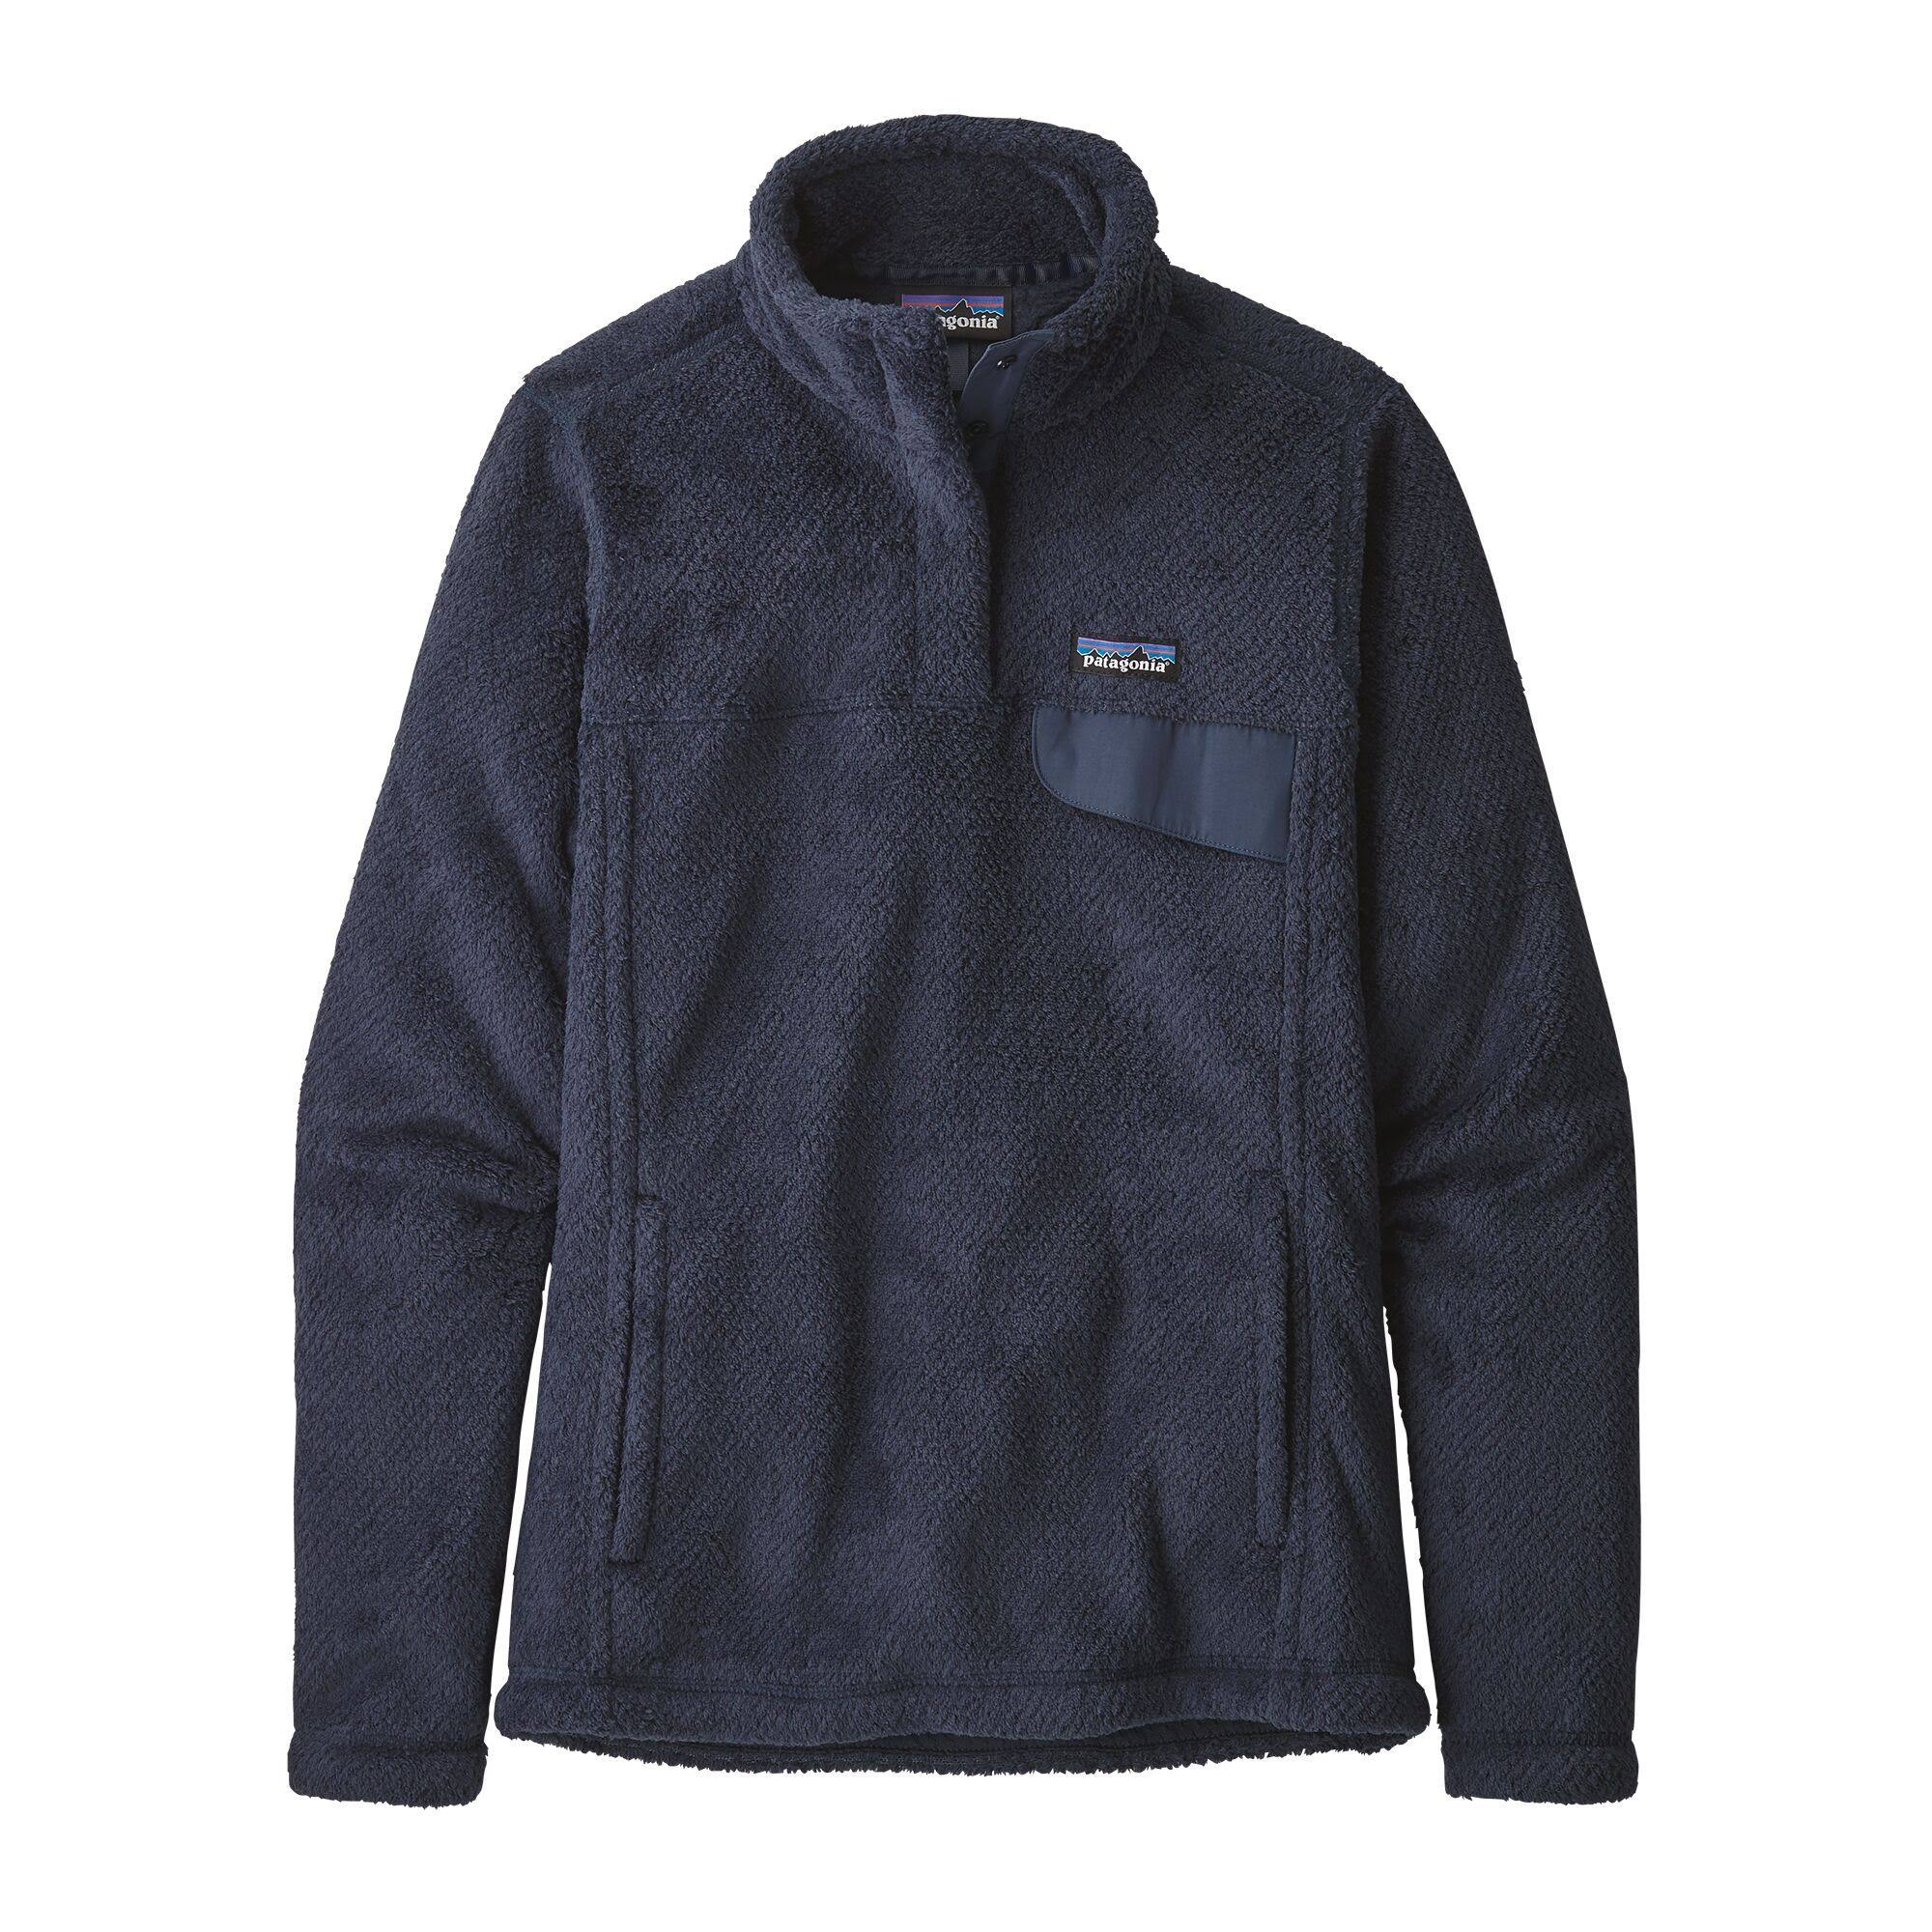 Patagonia Women's Re-Tool Snap-T Fleece Pullover - XL